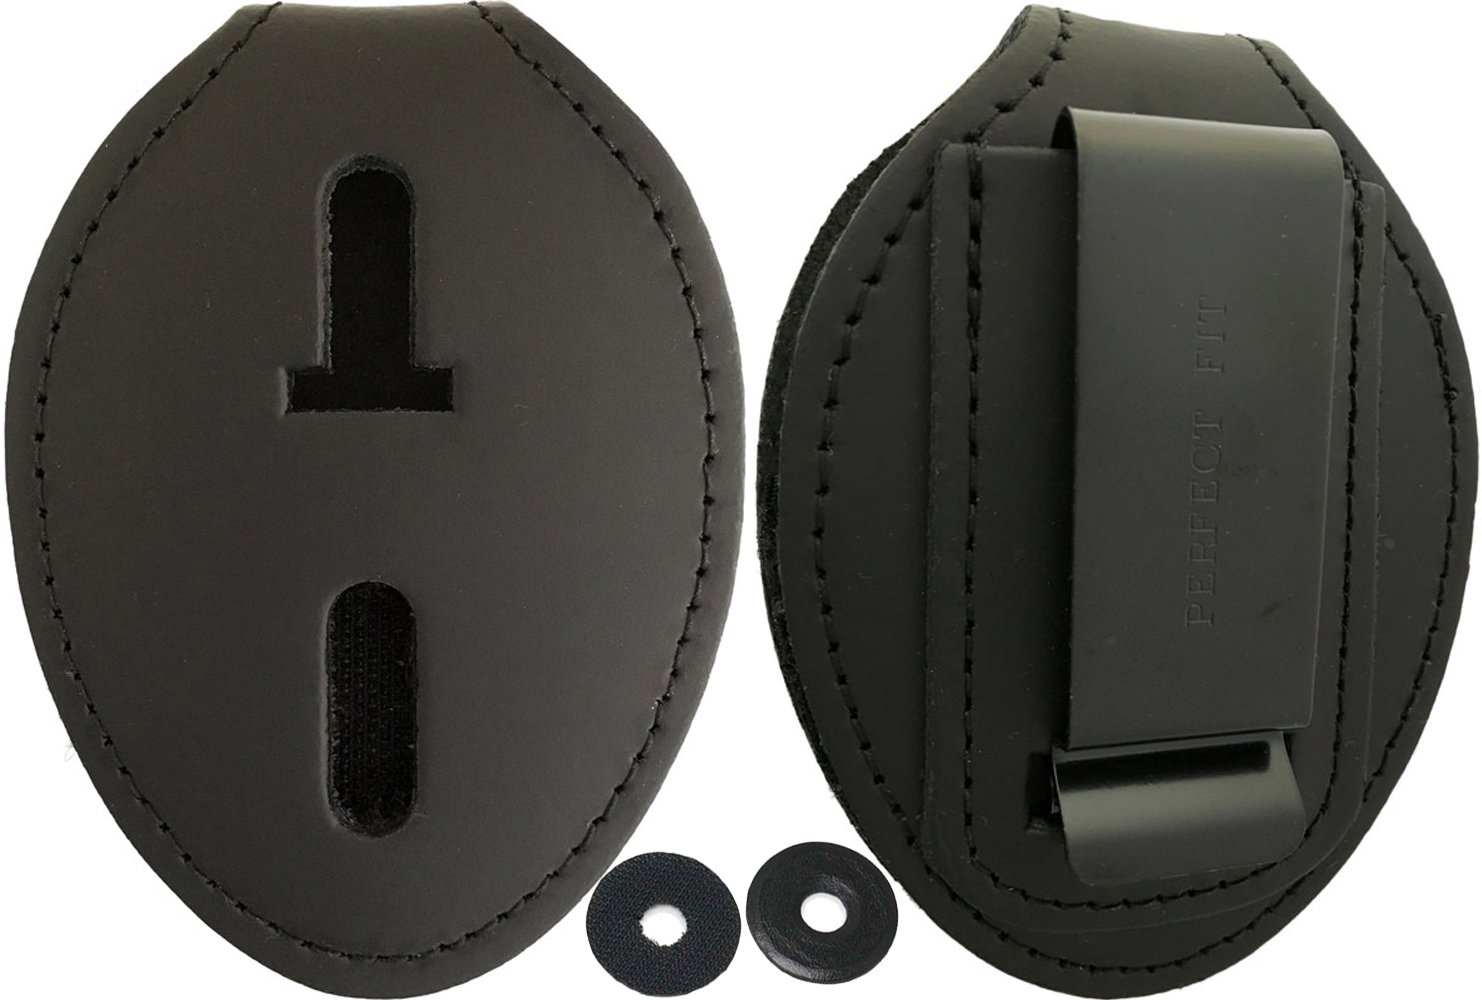 Oval Police Badge Holder Belt Clip - Optional To Use Around The Neck - Black Leather by Agent Gear USA